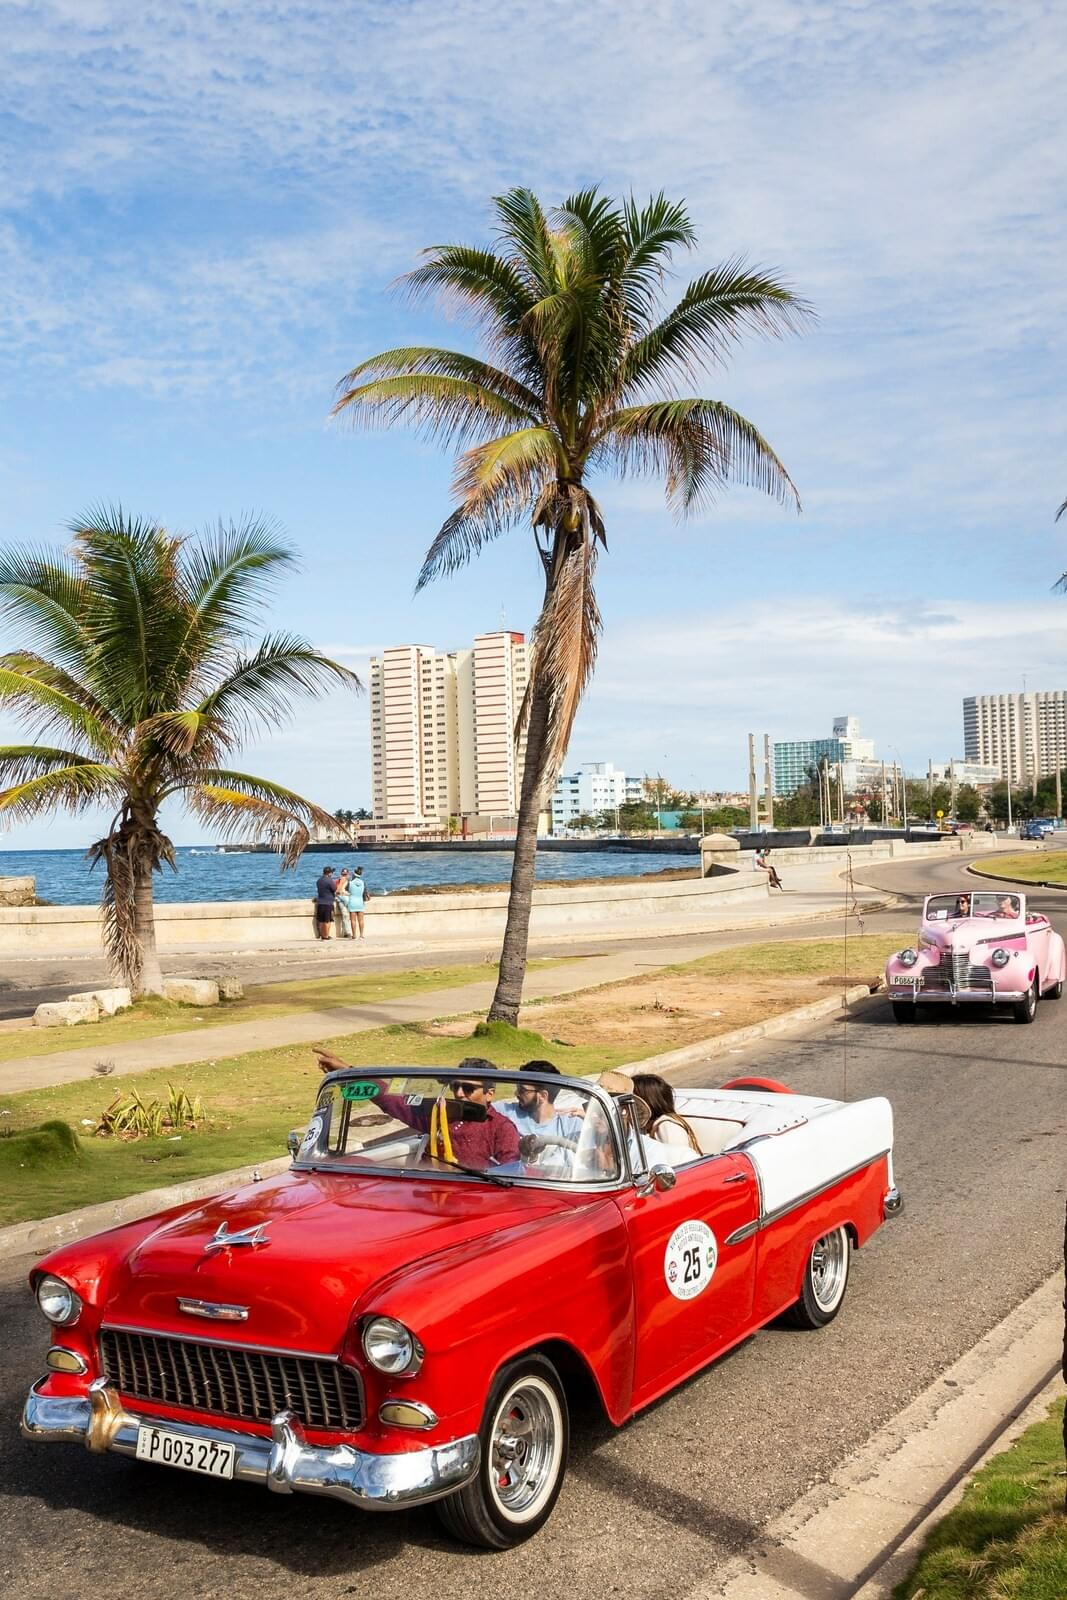 Riding a classic American car in Cuba is not just a cliché, it is a historic experiences as this cars survived